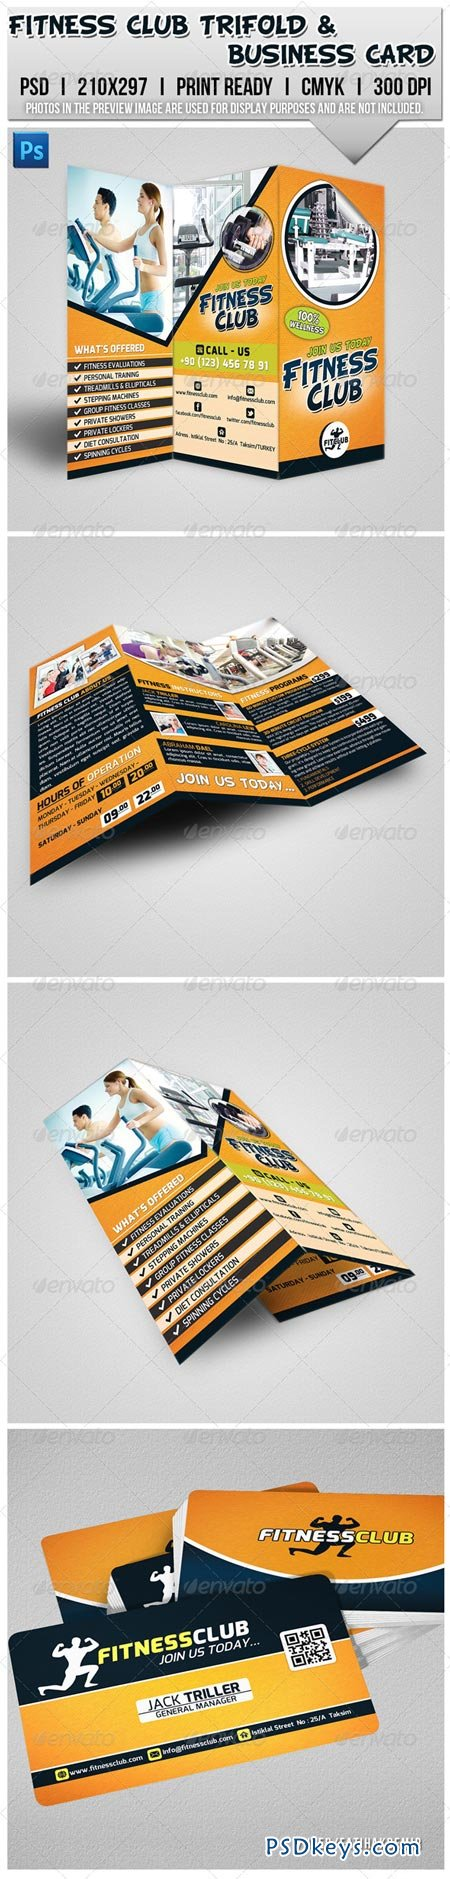 Fitness Club Trifold Brochure & Business Card 6925250